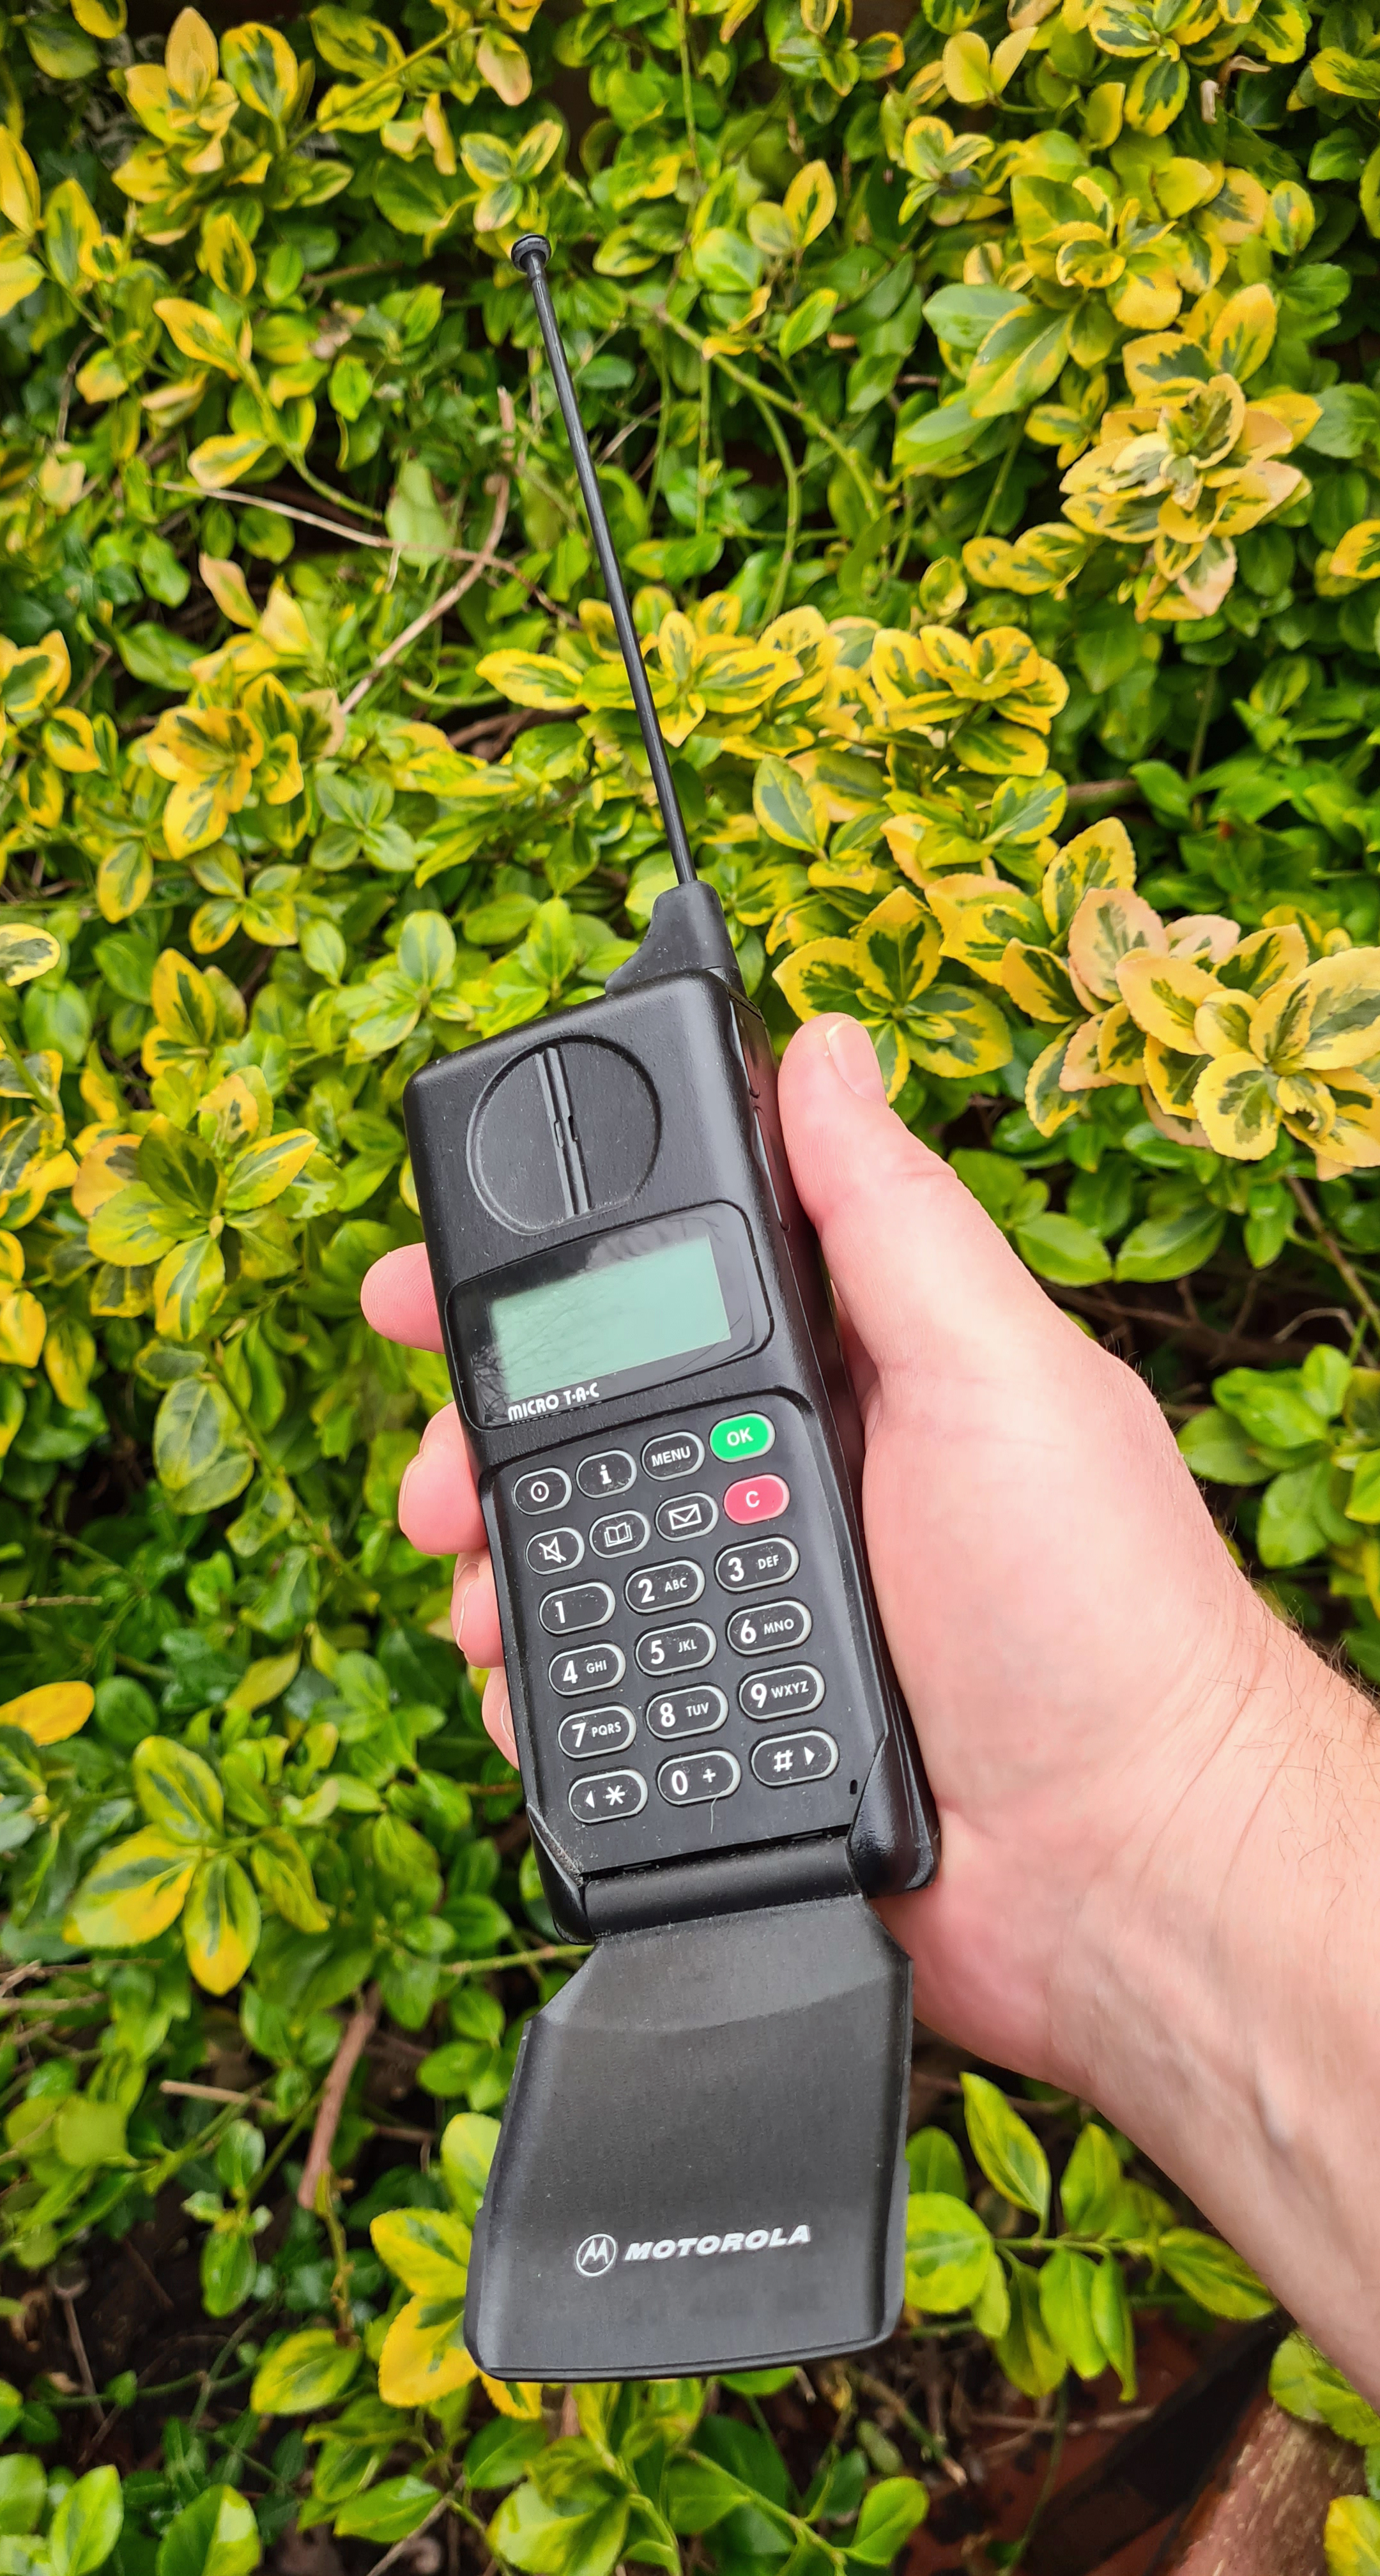 Motorola International 7500 GSM 900 'flip phone' from 1995. With extending ariel and a flip open cover over the keys. The MicroTAC was a digital phone that evolved out of an analogue phone. This 'brick' had been left behind when Nokia shot ahead with adopting the emerging GSM standard